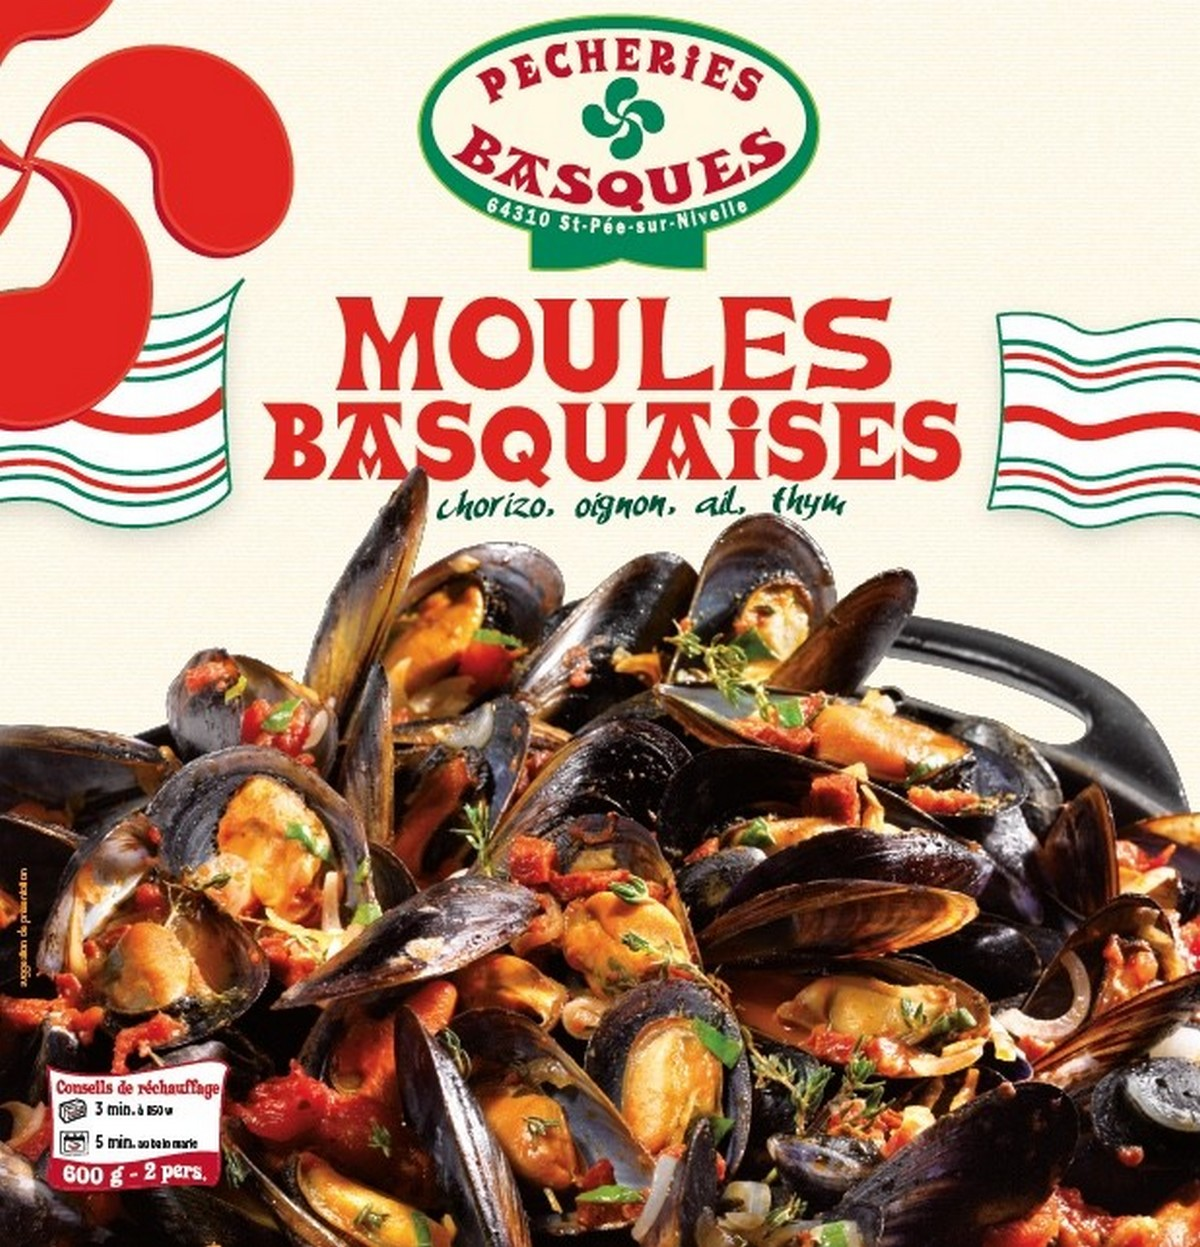 Moules Basquaises, Pêcheries Basques (600 g)